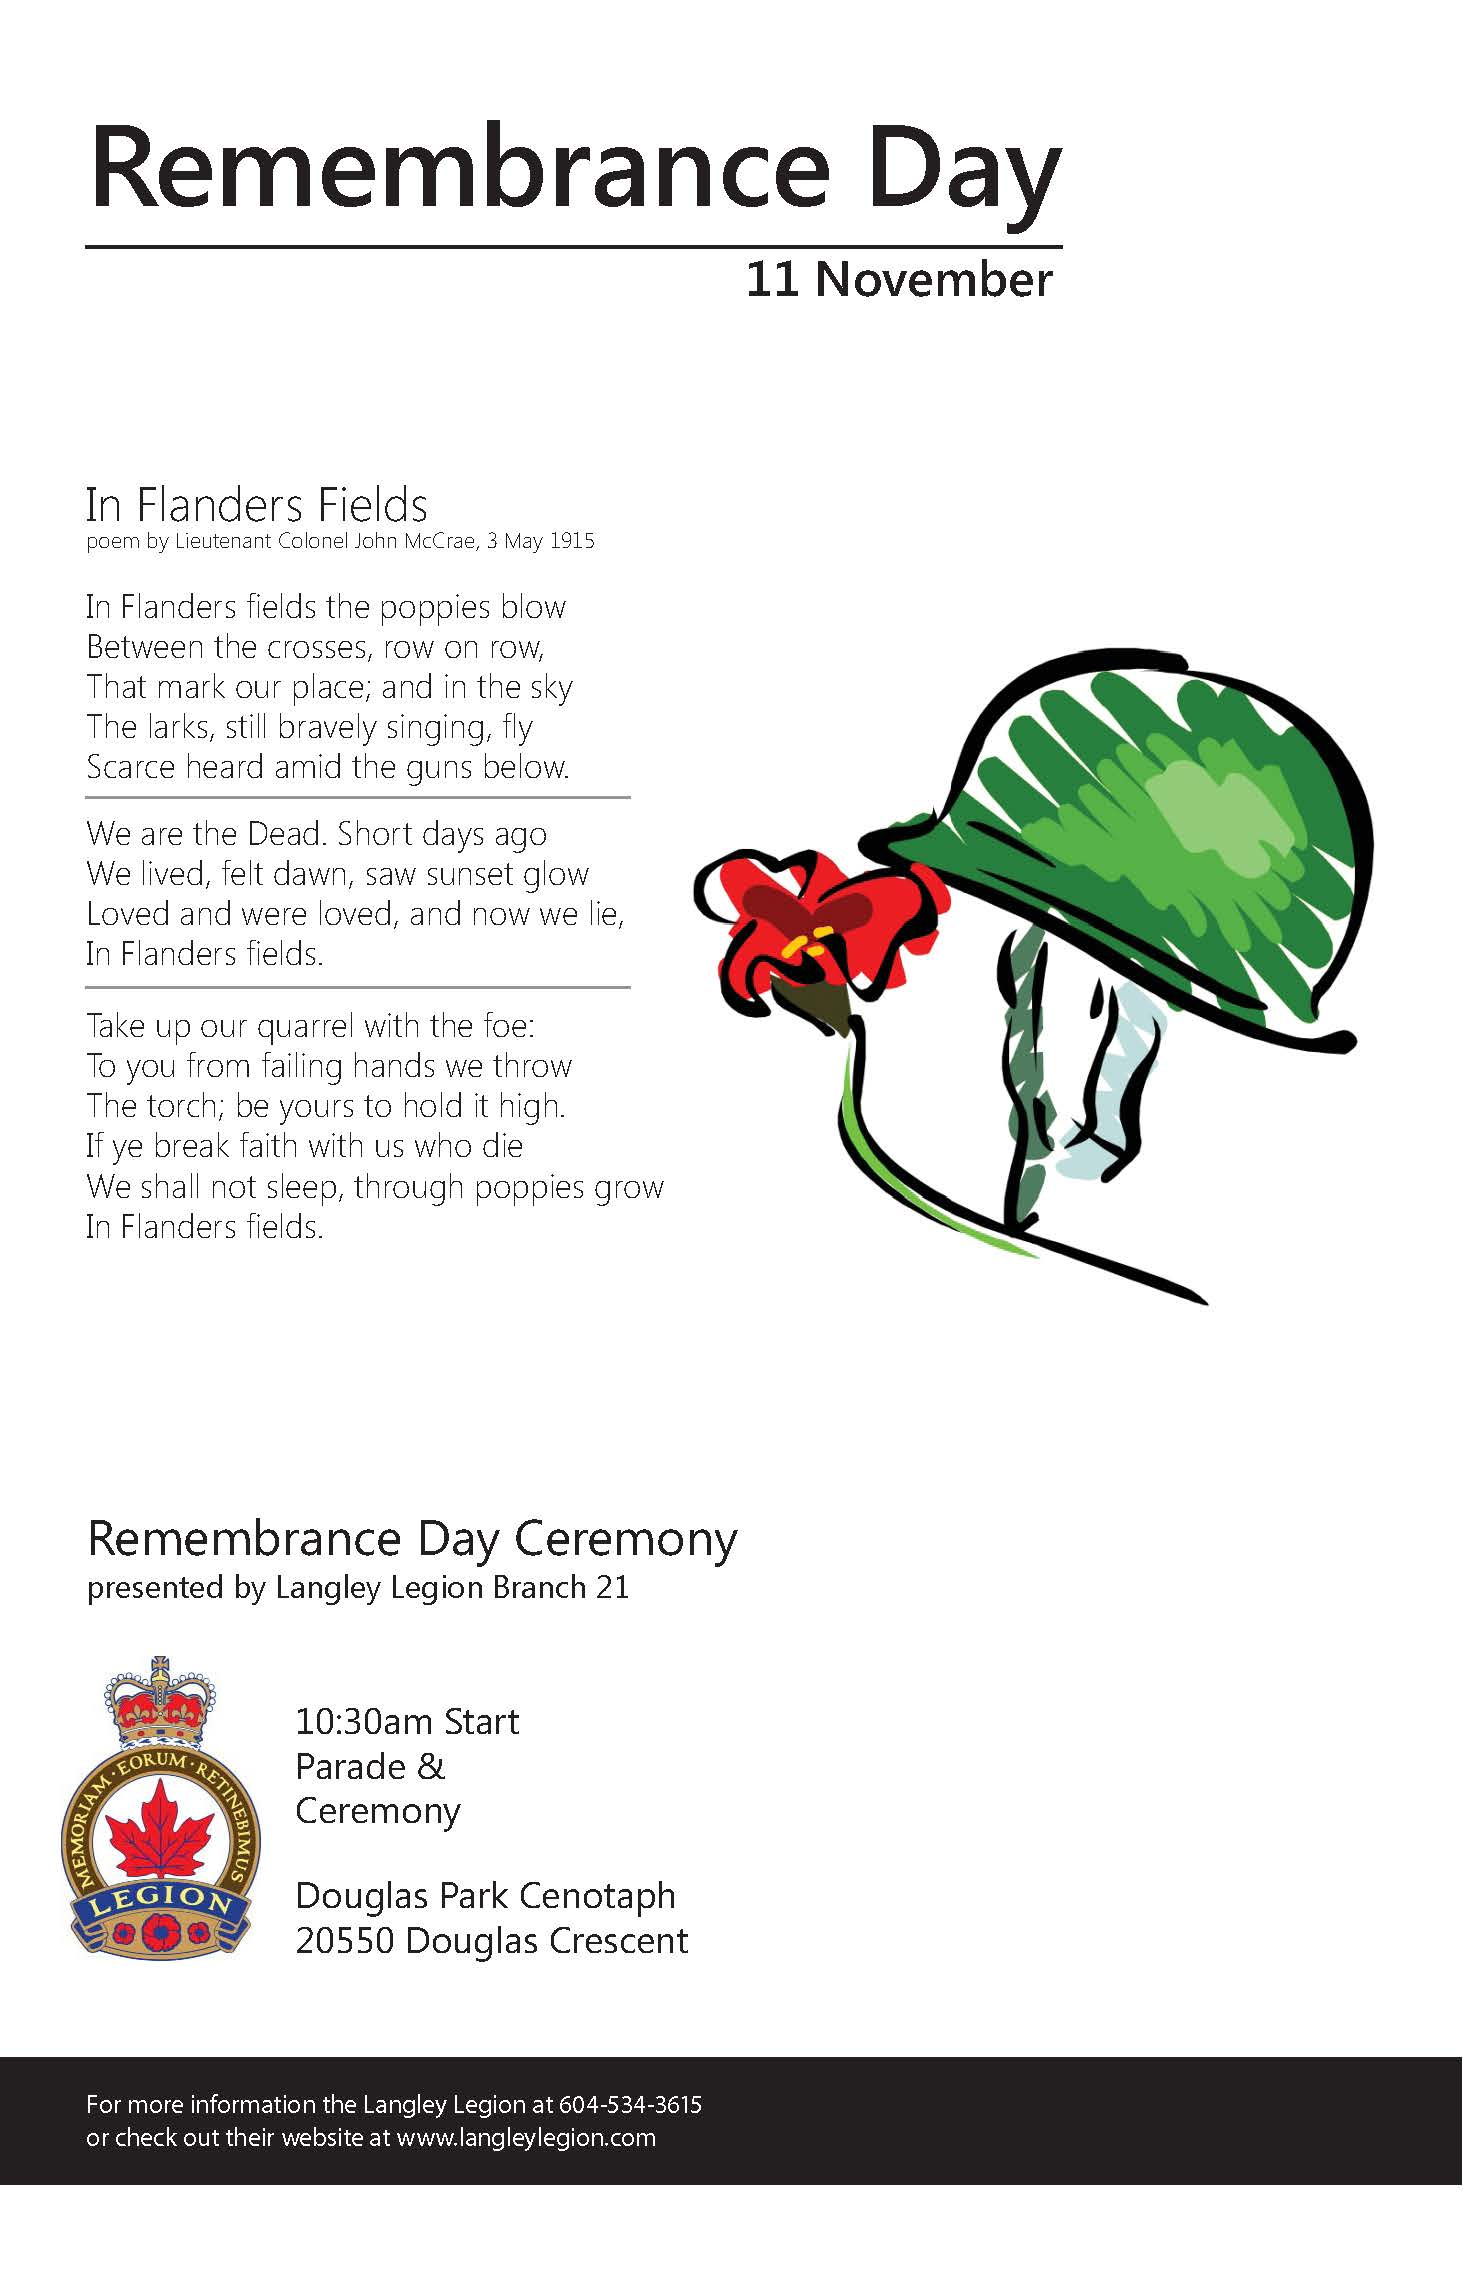 Remembrance Day | City of Langley